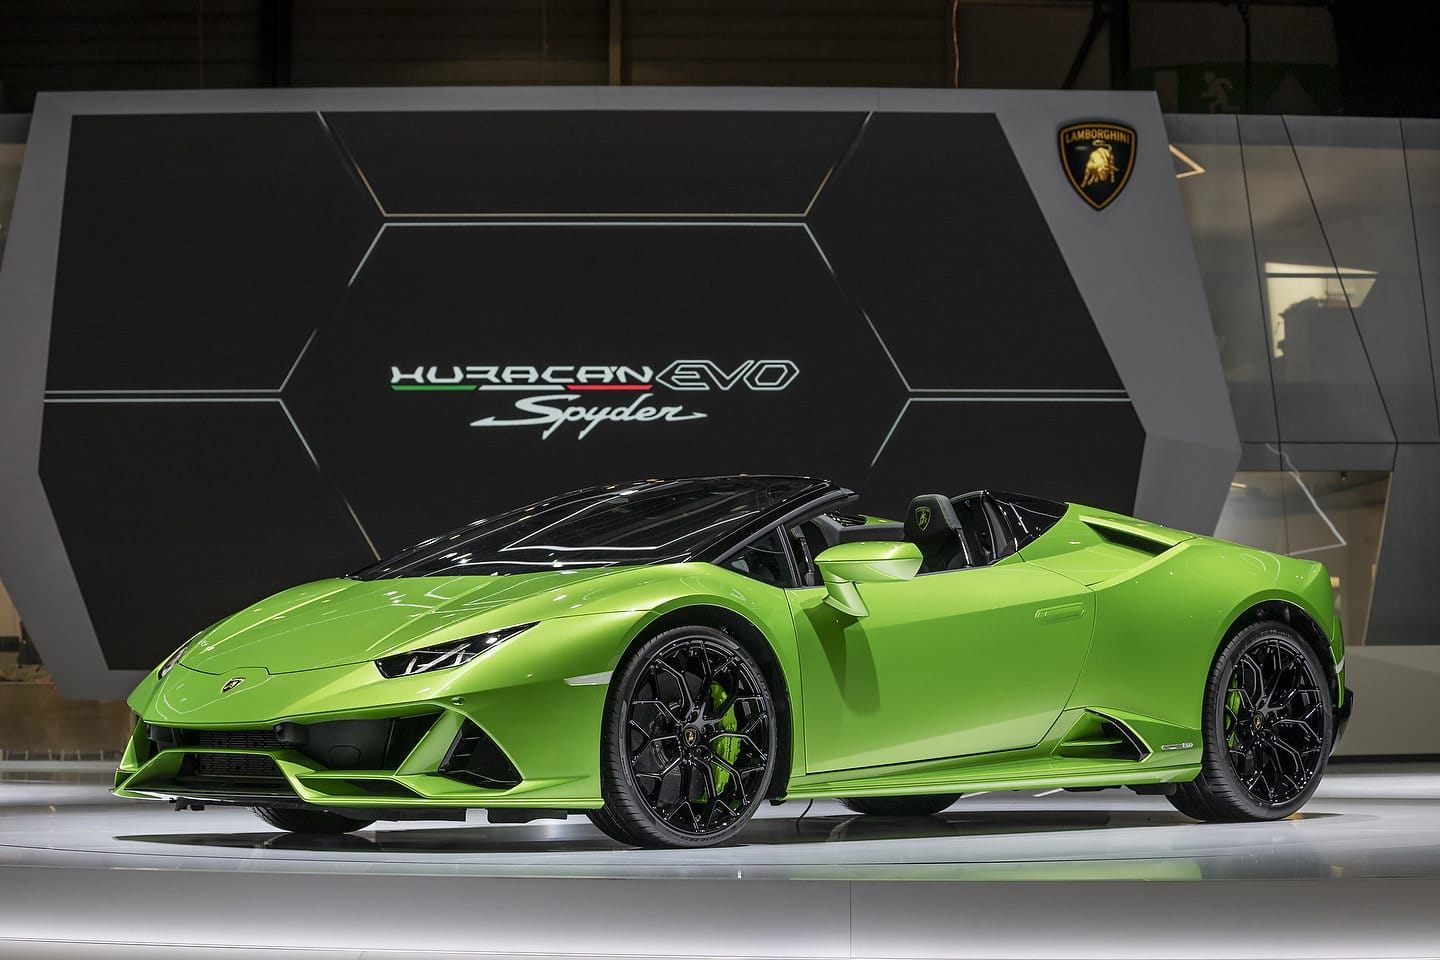 2020 Lamborghini Huracan Evo Spyder Pictures Gallery And Quick Info